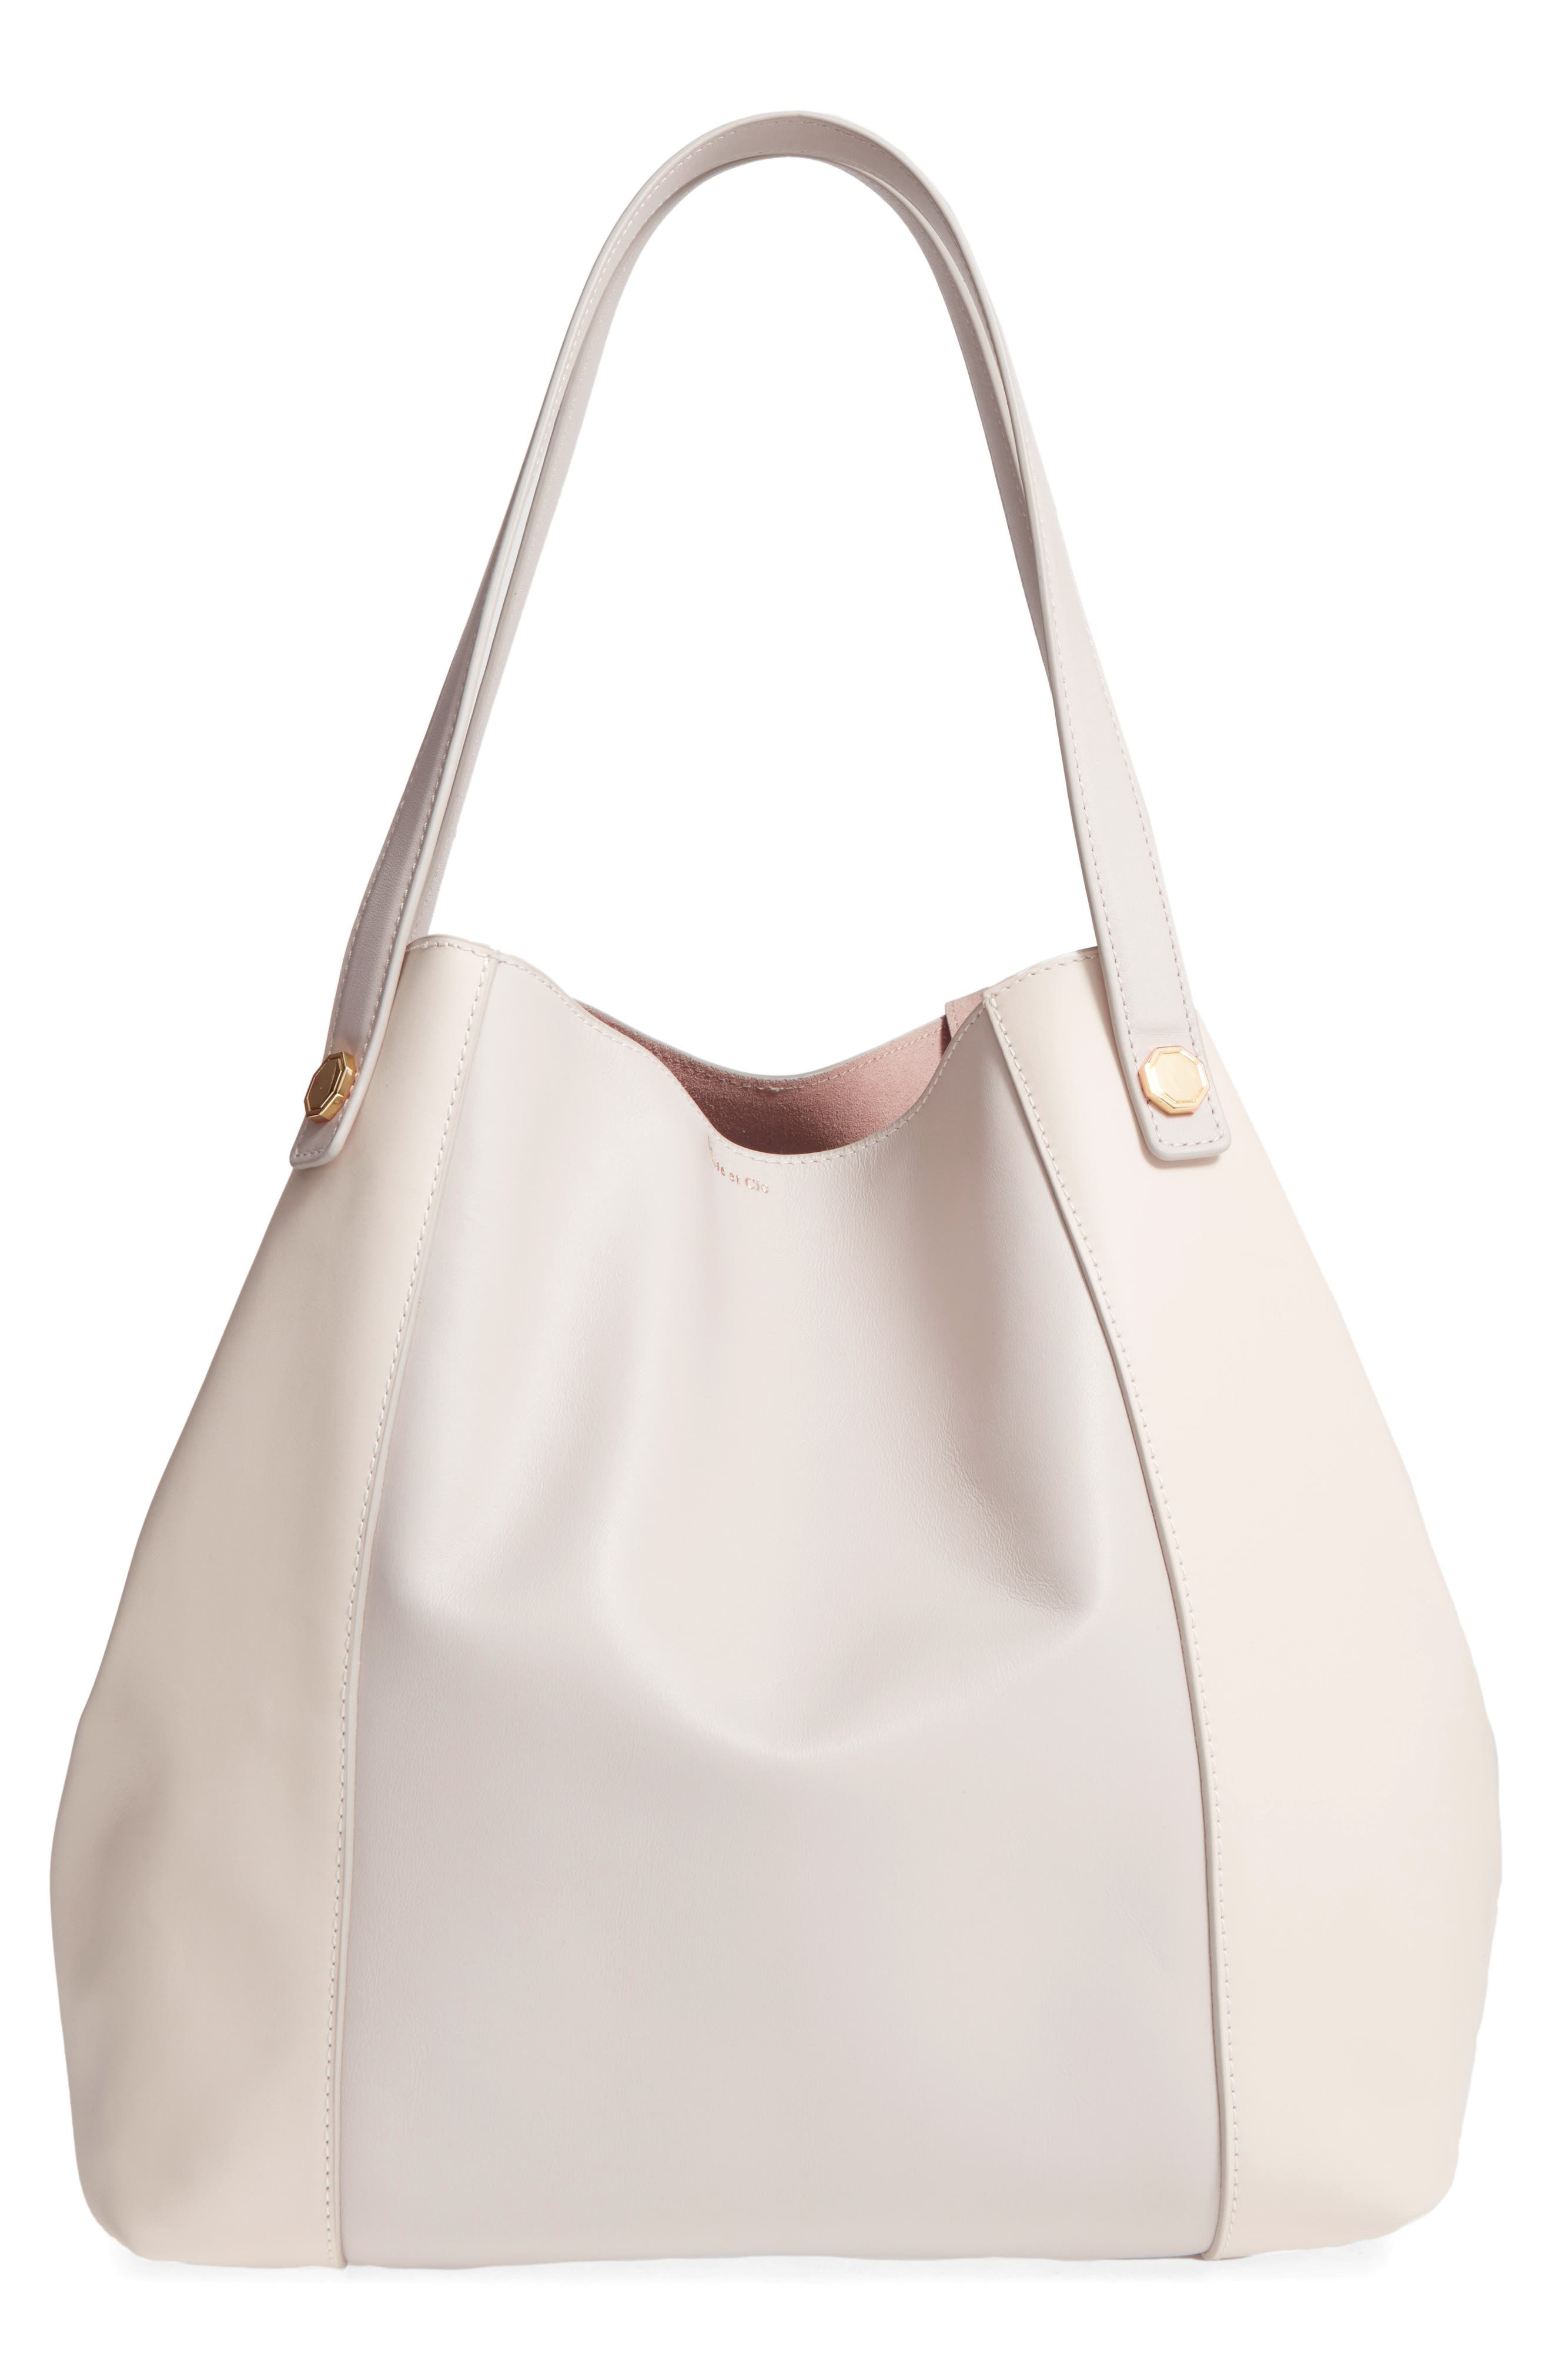 Main Image - Louise et Cie Maree Leather Tote